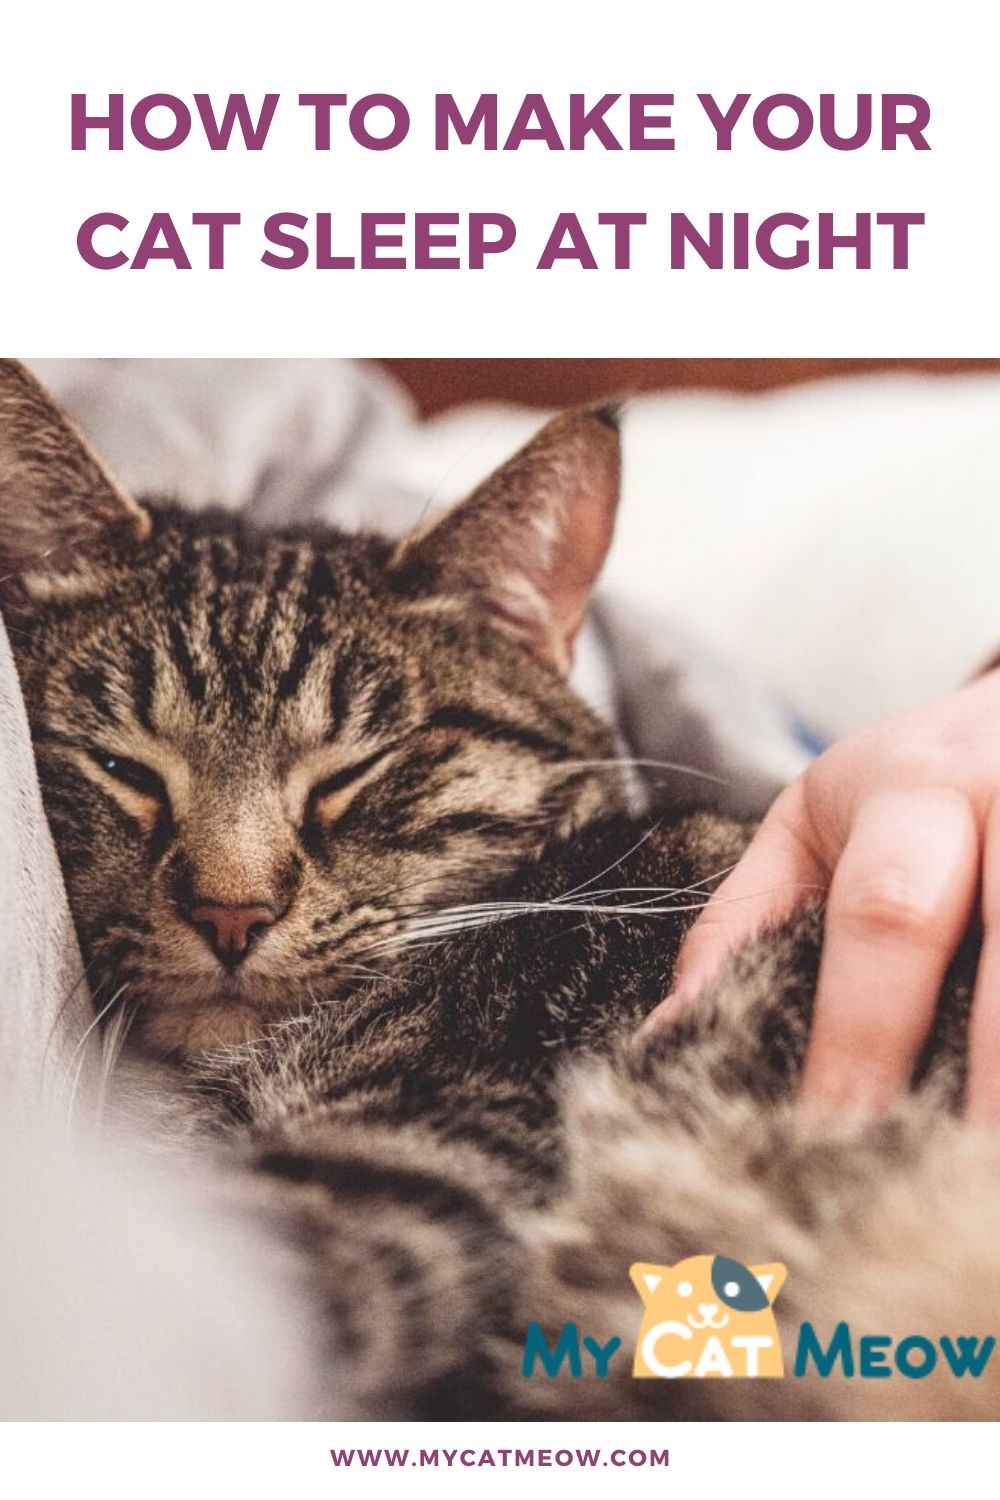 How to make your cat sleep at night